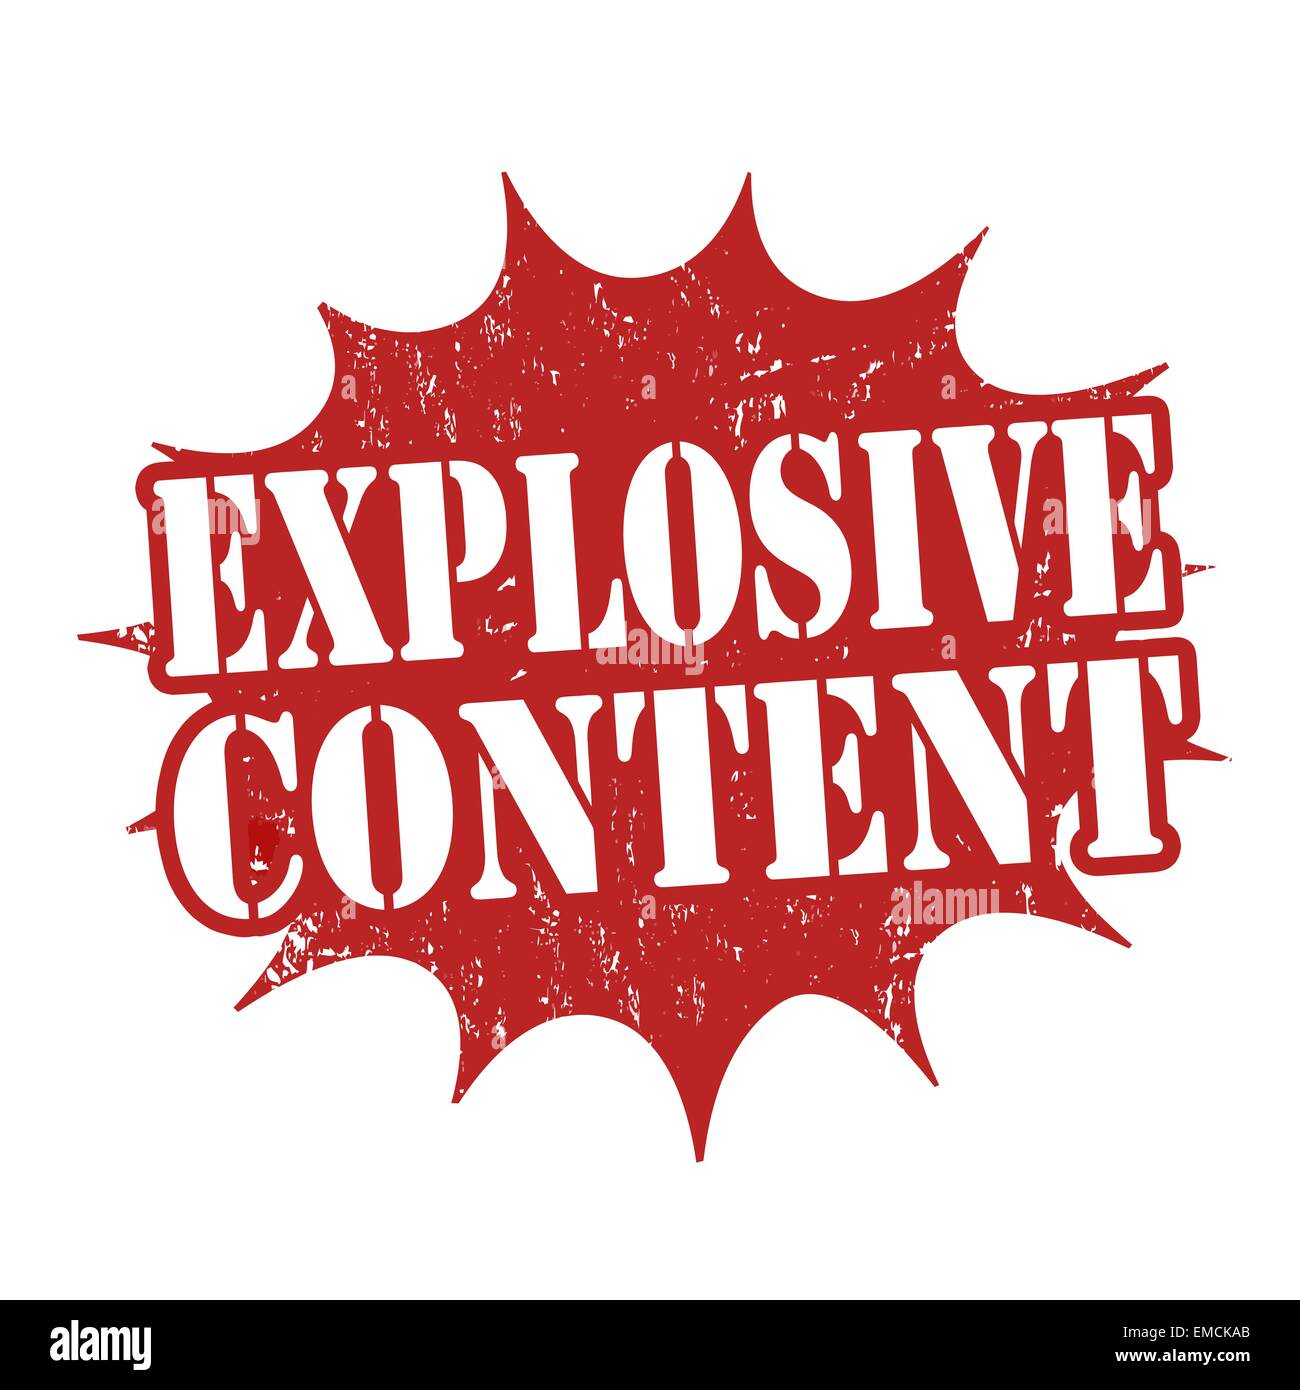 Explosive content stamp - Stock Image